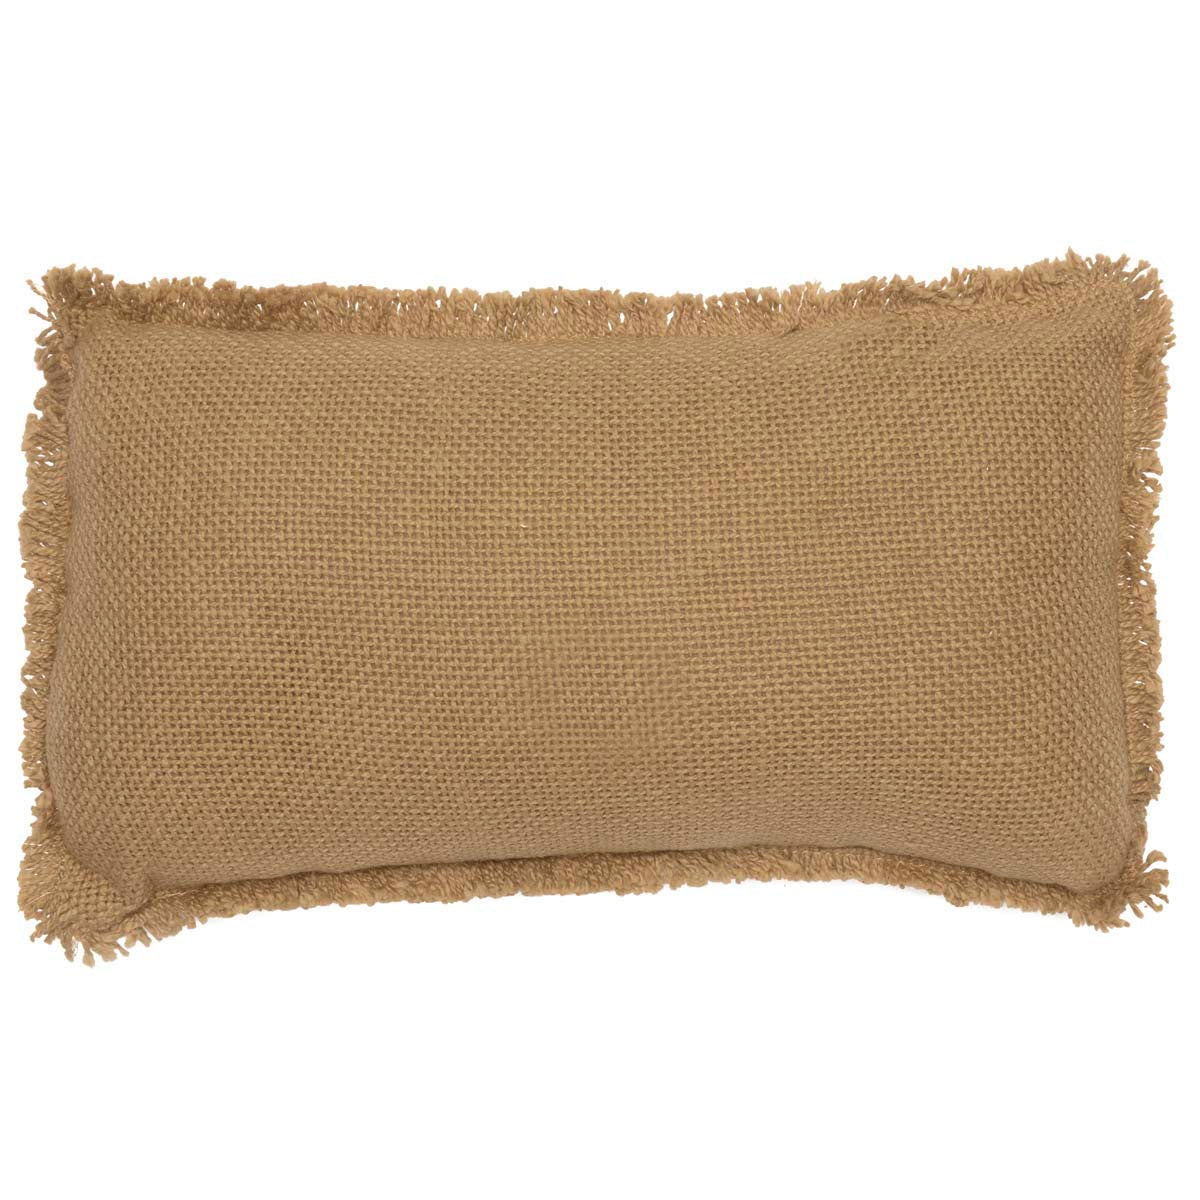 Burlap Natural Pillow Always Kiss Me Goodnight 7x13 - Woodrol